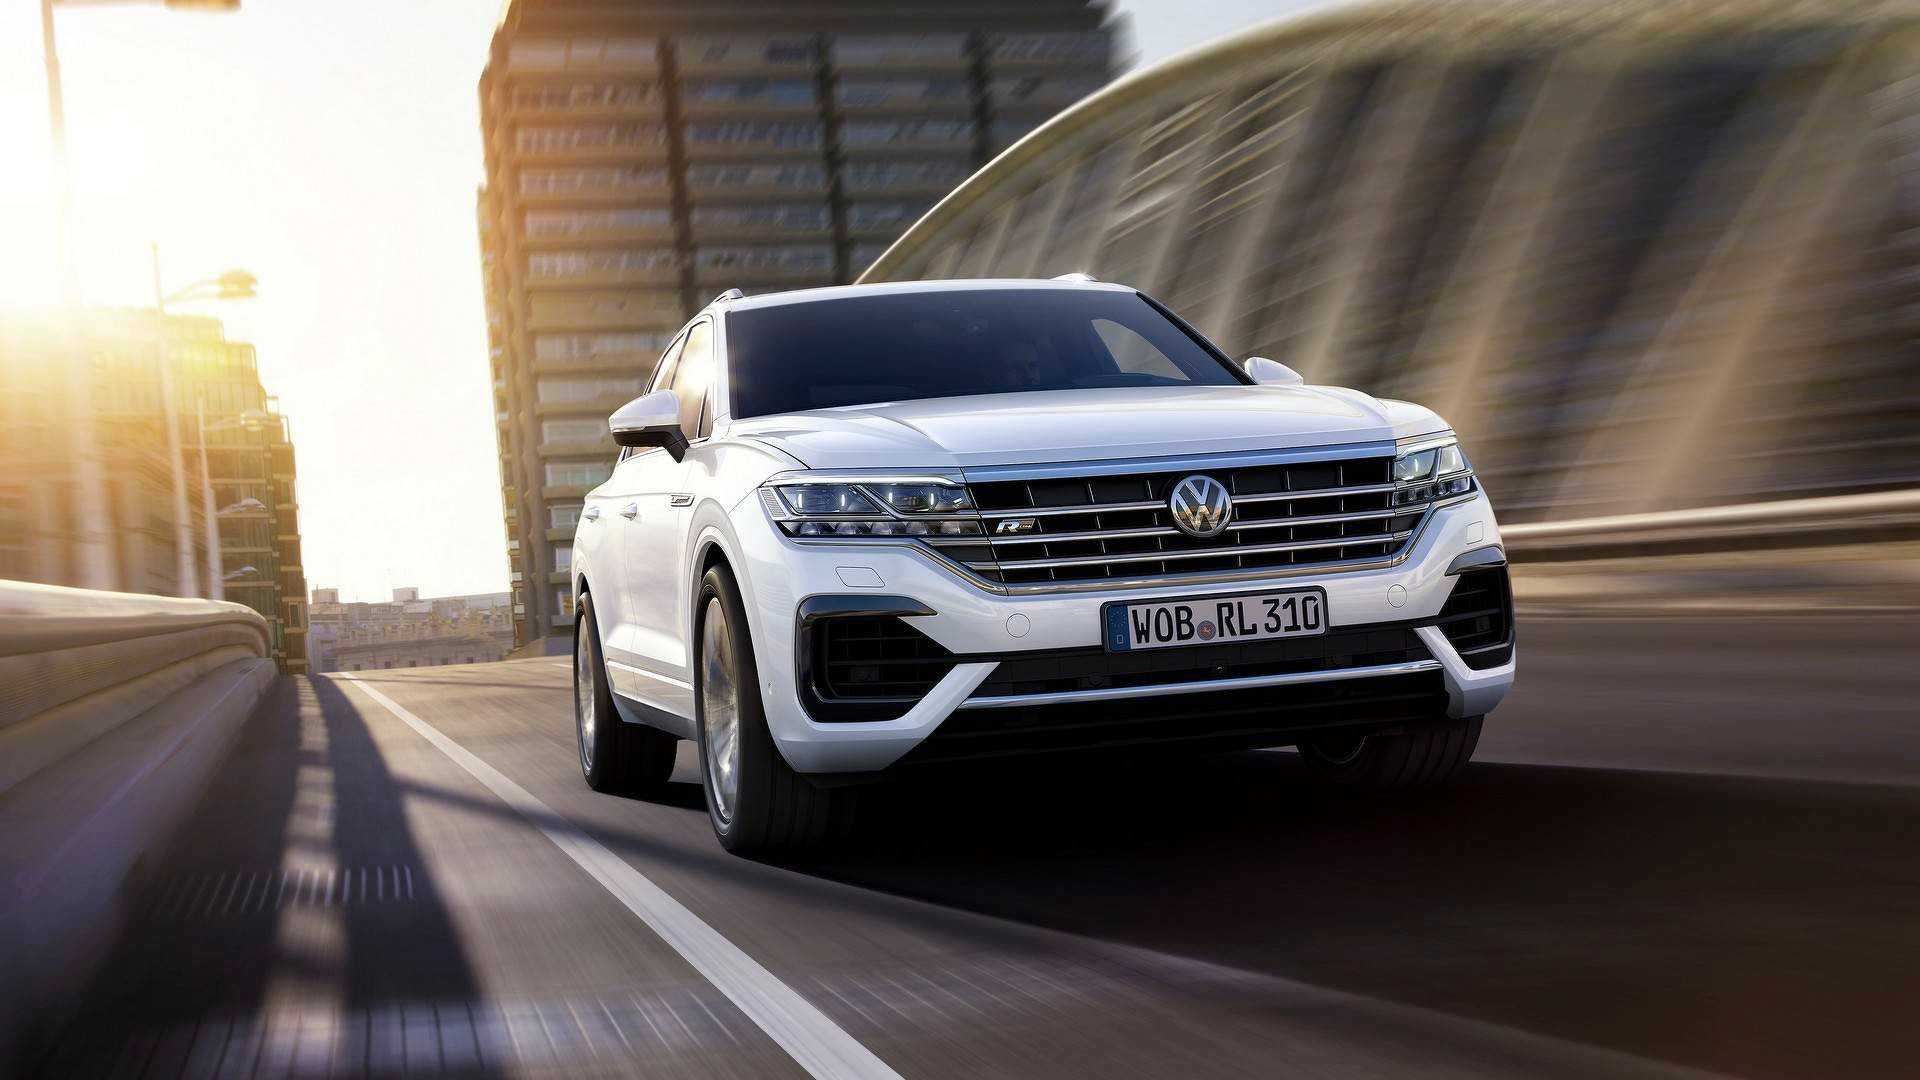 83 Great The Volkswagen Touareg 2019 India Release Date Performance for The Volkswagen Touareg 2019 India Release Date